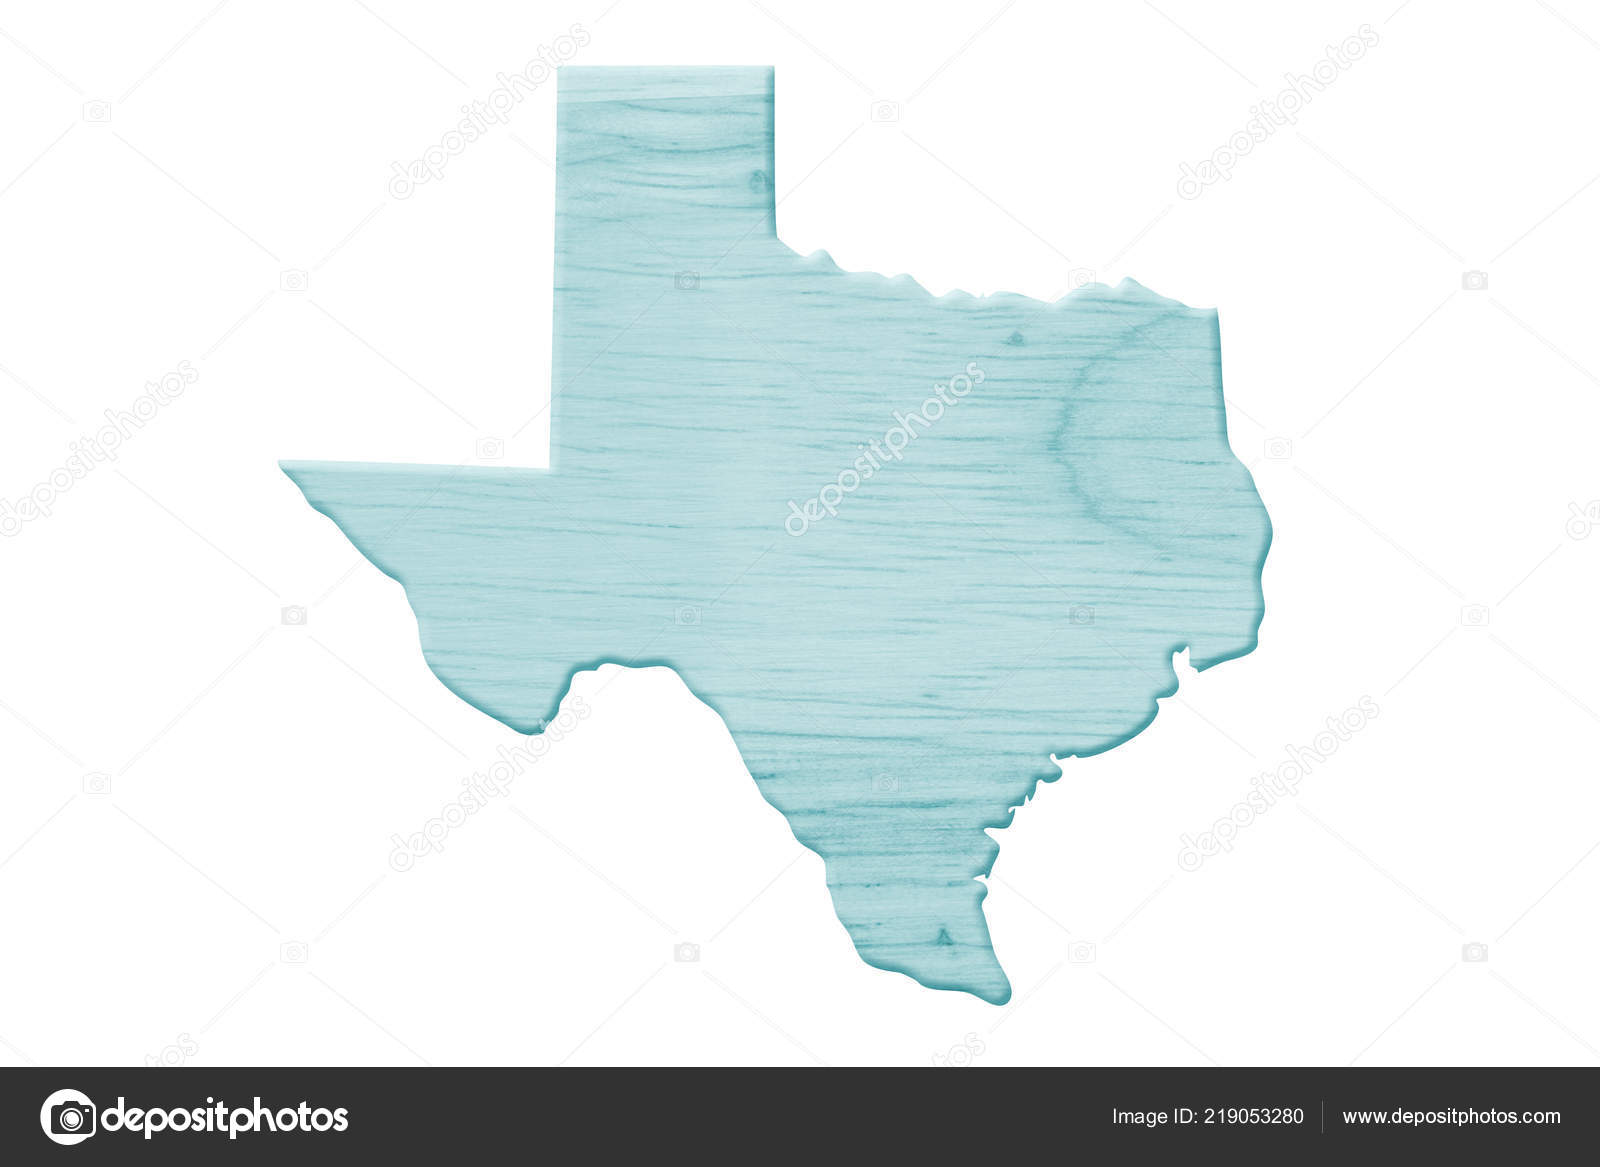 A Map Of The State Of Texas.Map State Texas United States America Made Blue Wood Isolated